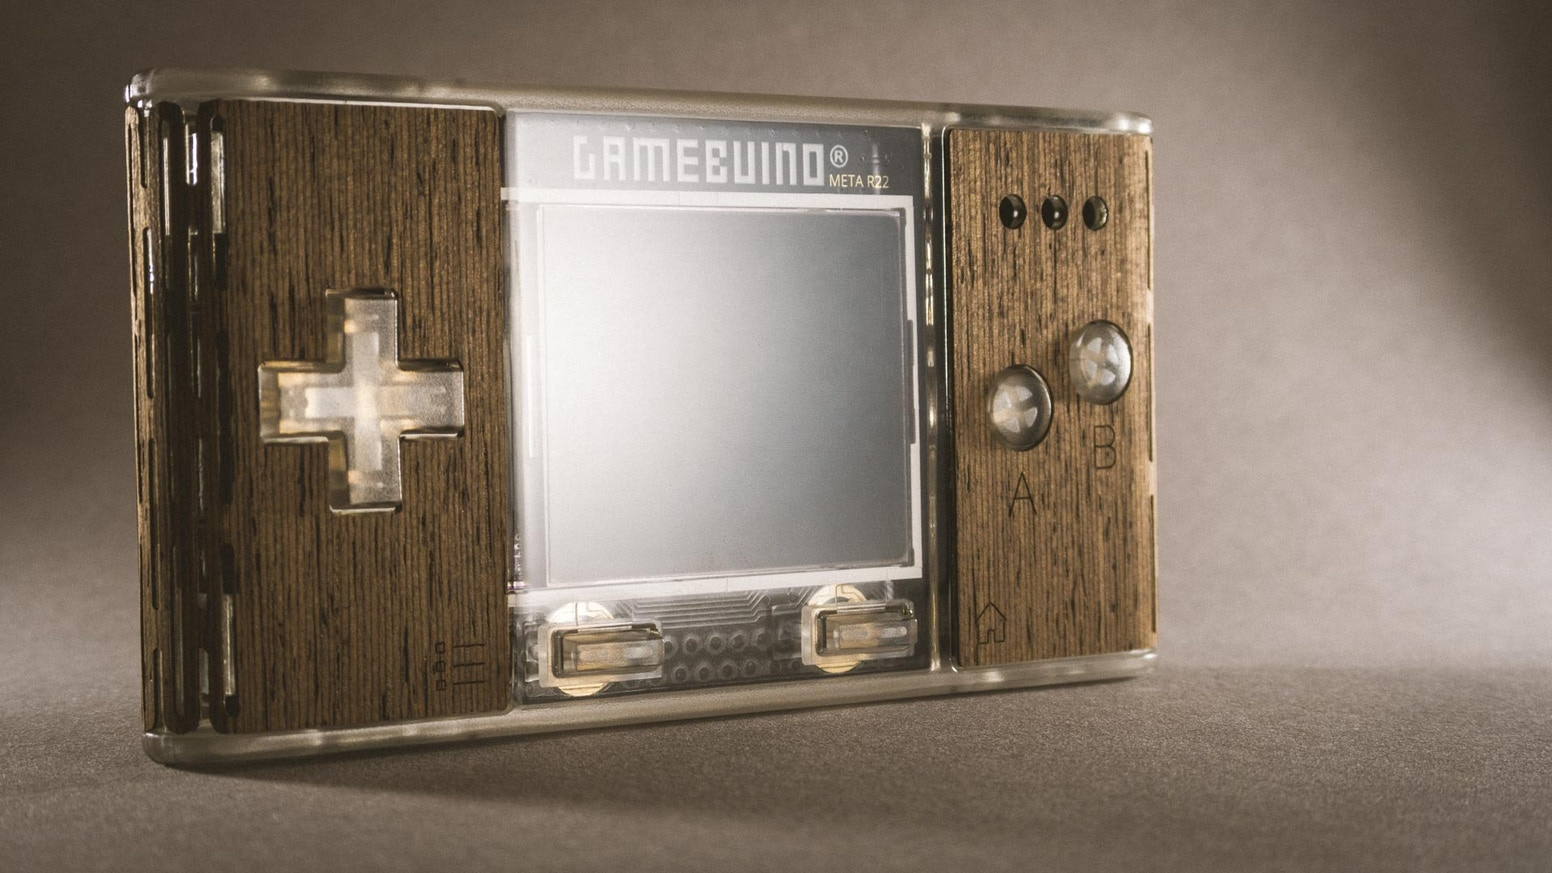 Go beyond gaming. Make your first game within hours using this Arduino compatible retro console.